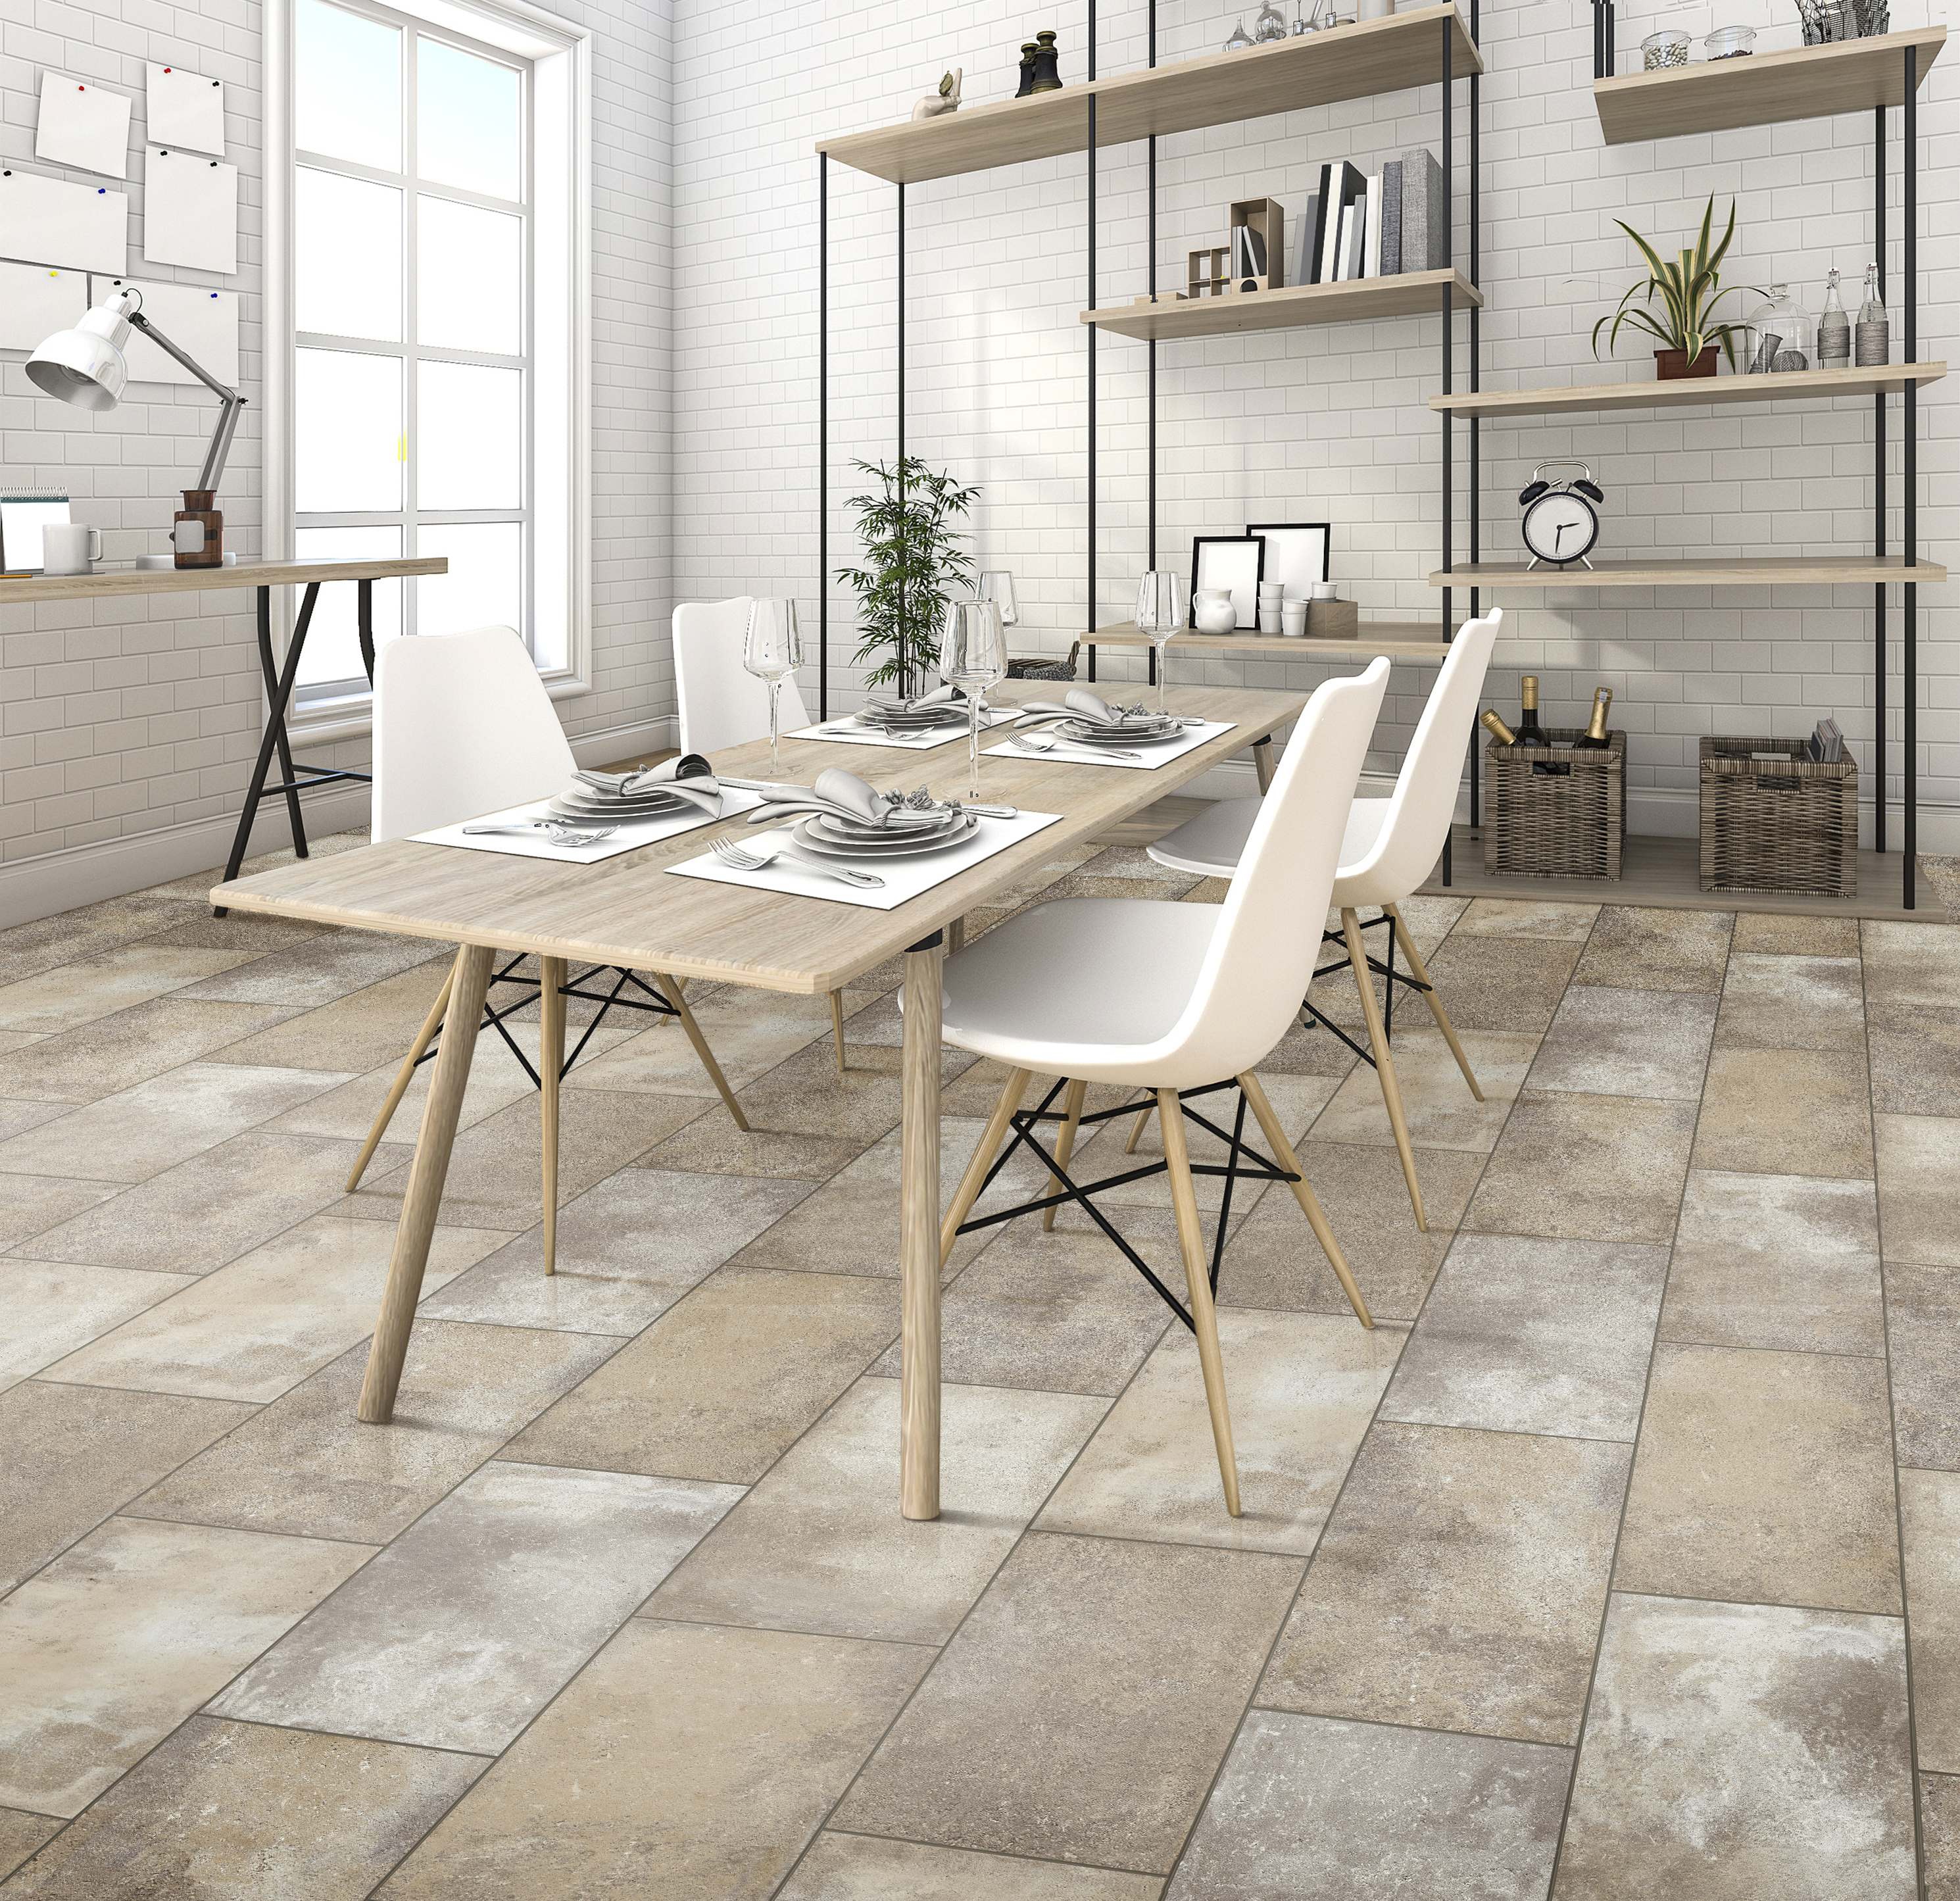 Kitchen Table in a Room With Tile Flooring